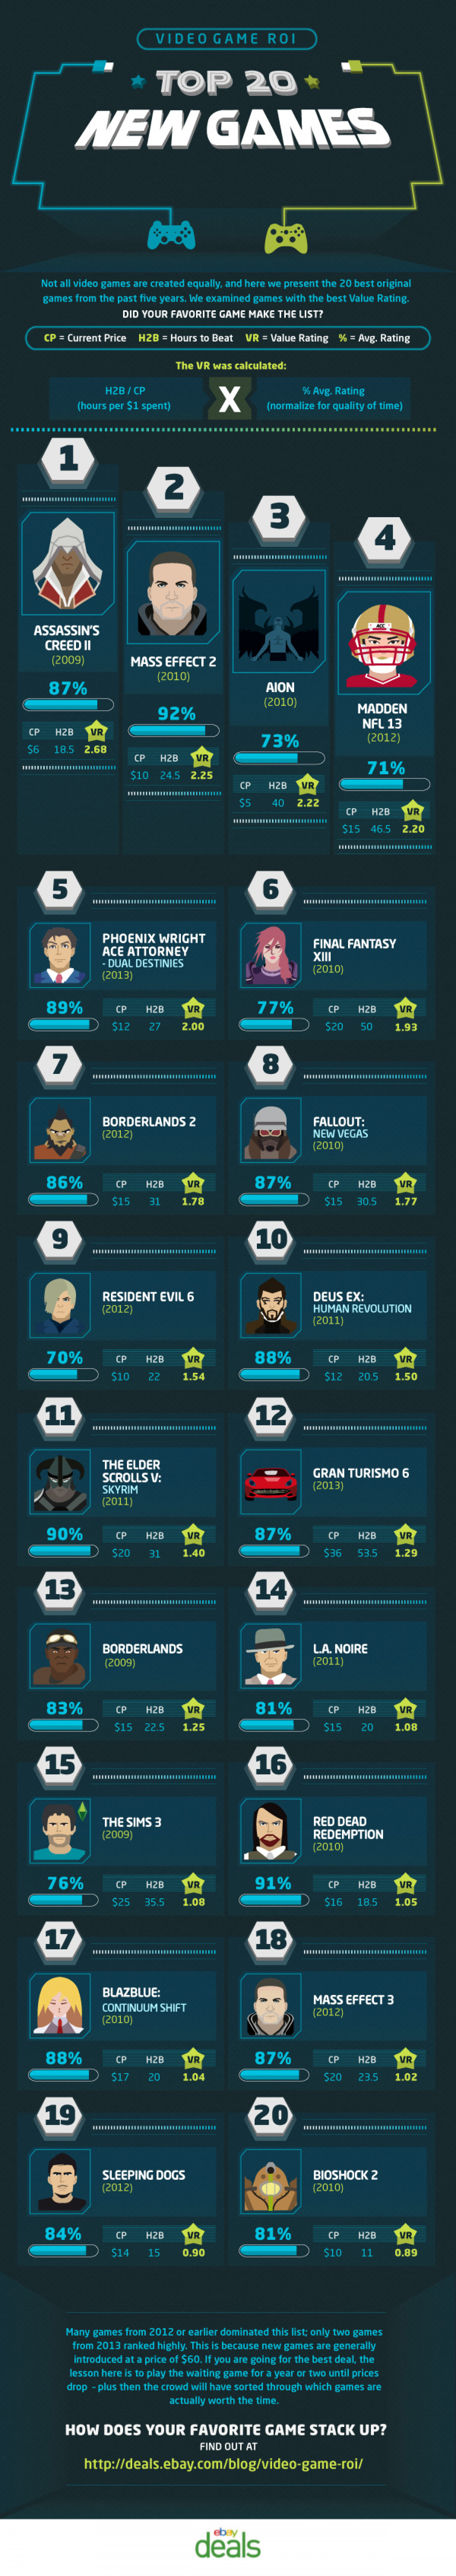 Top 20 New Games Infographic